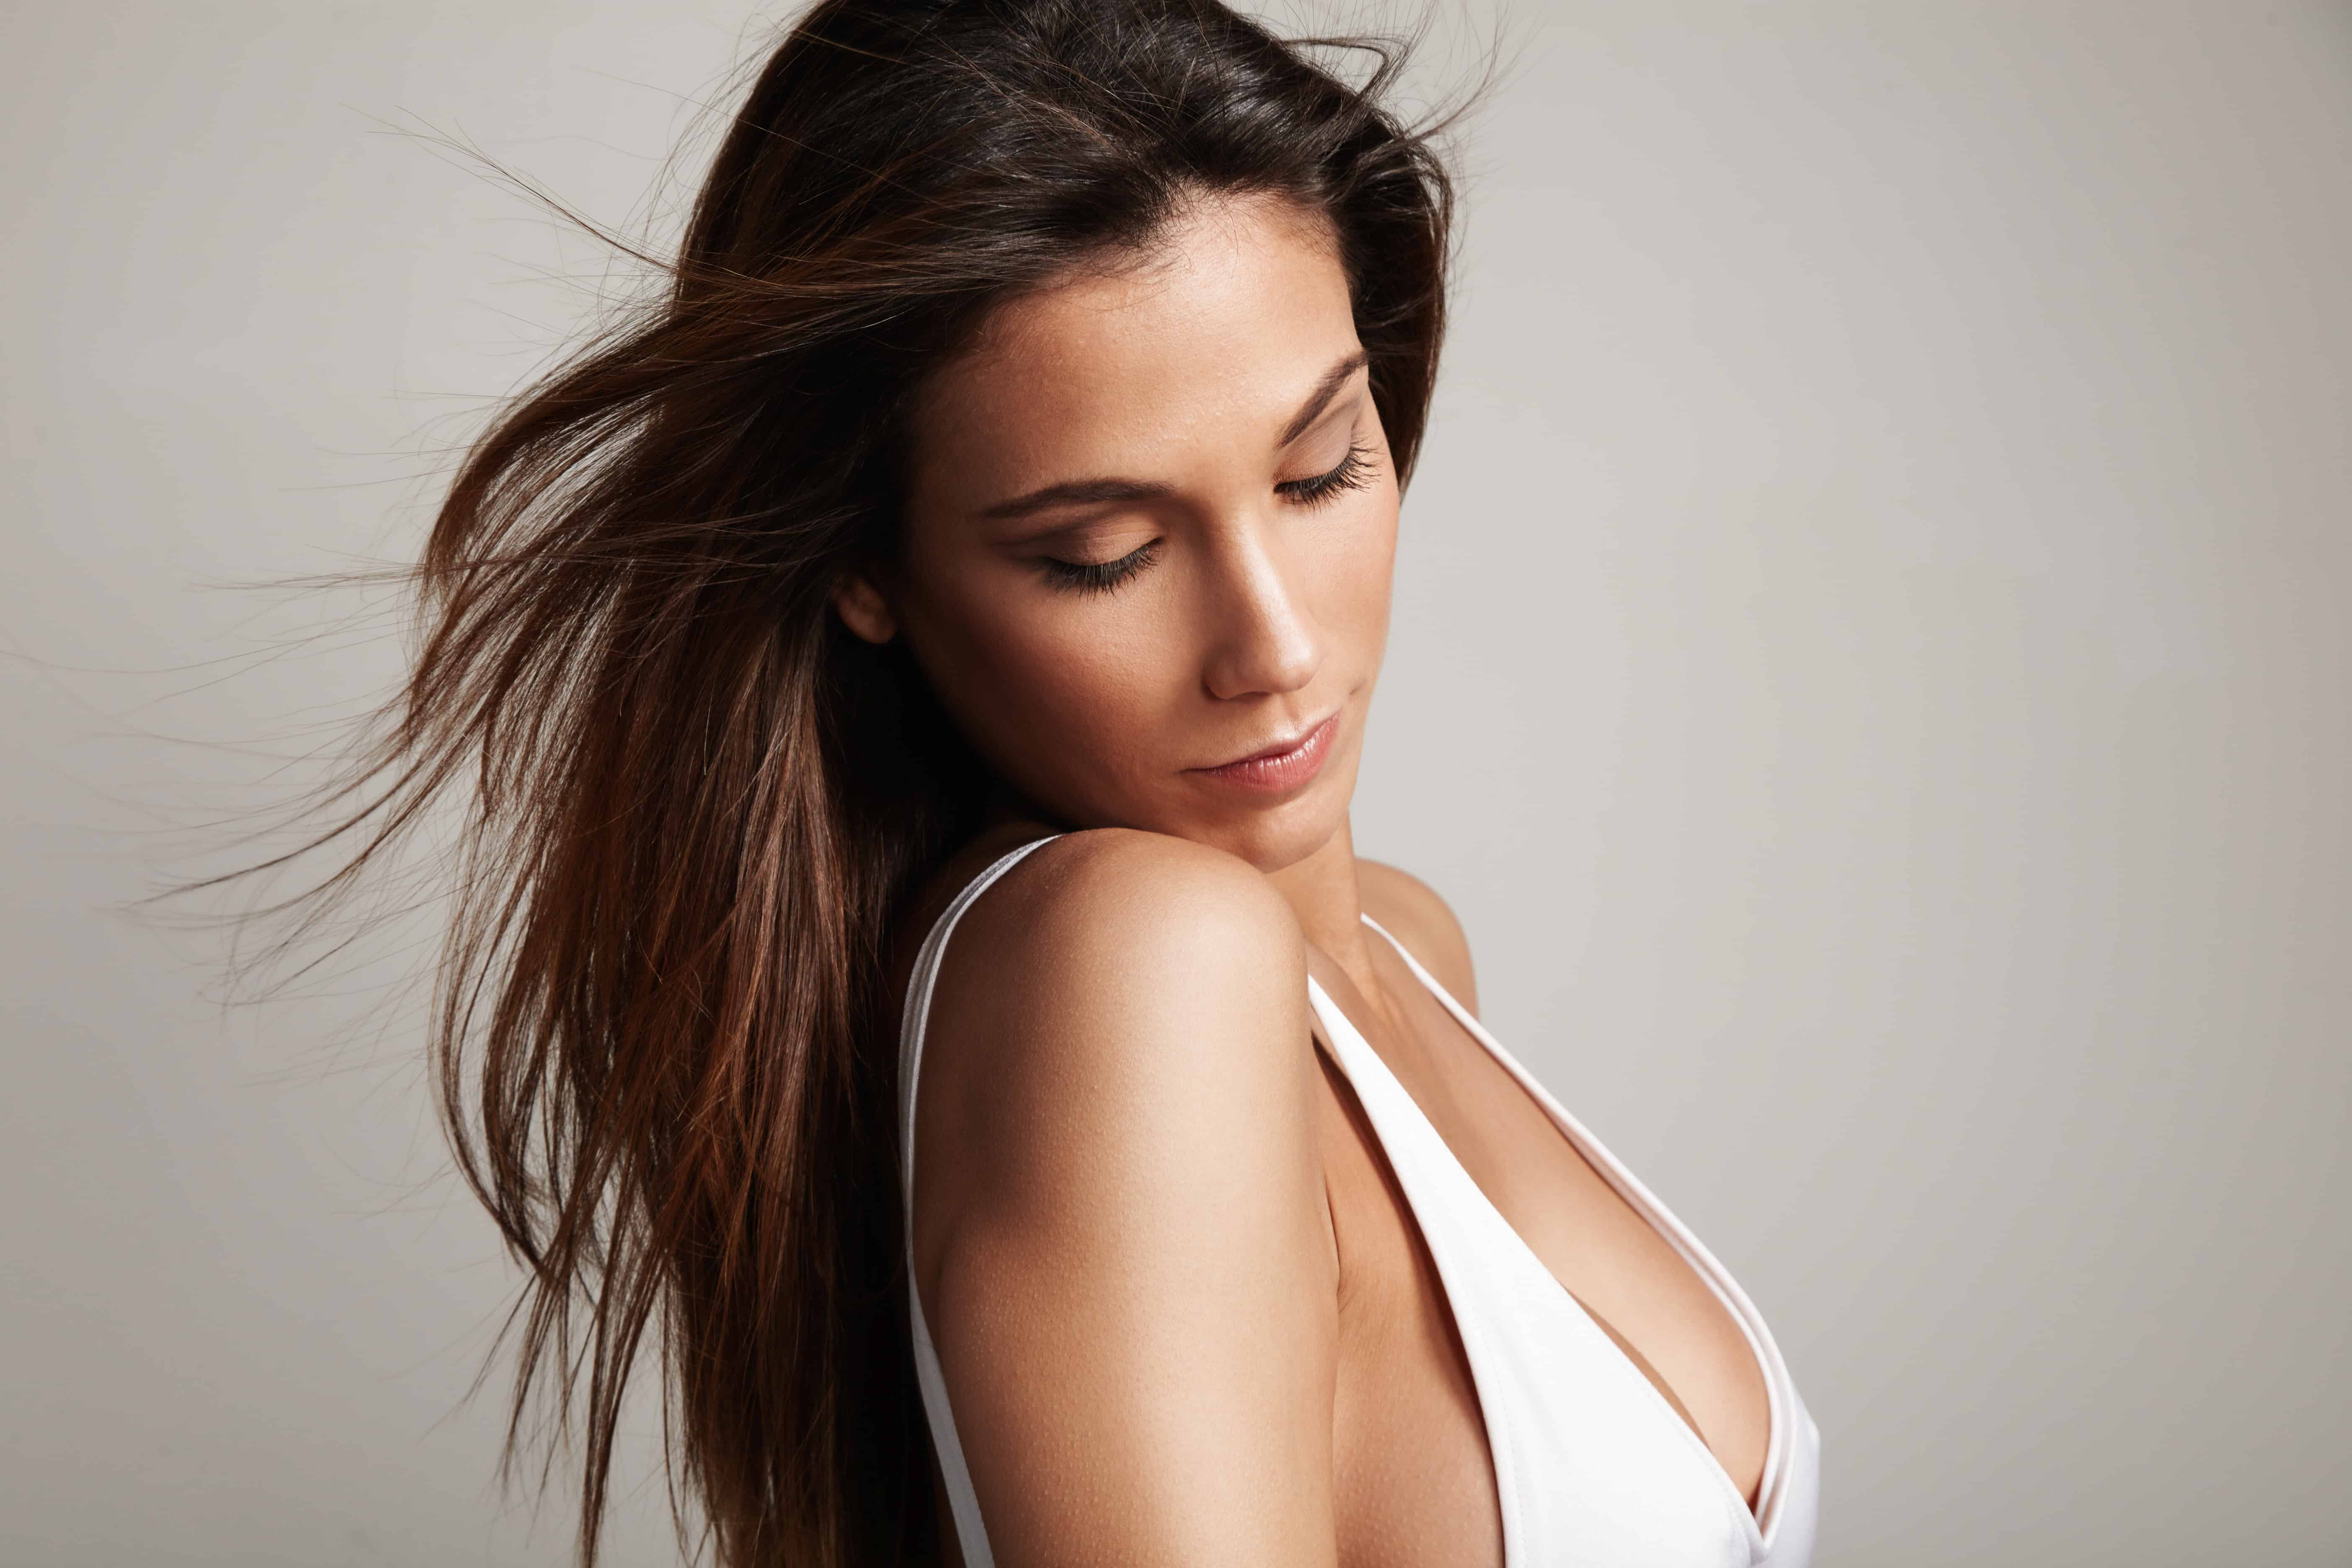 Scar care after plastic surgery in San Diego